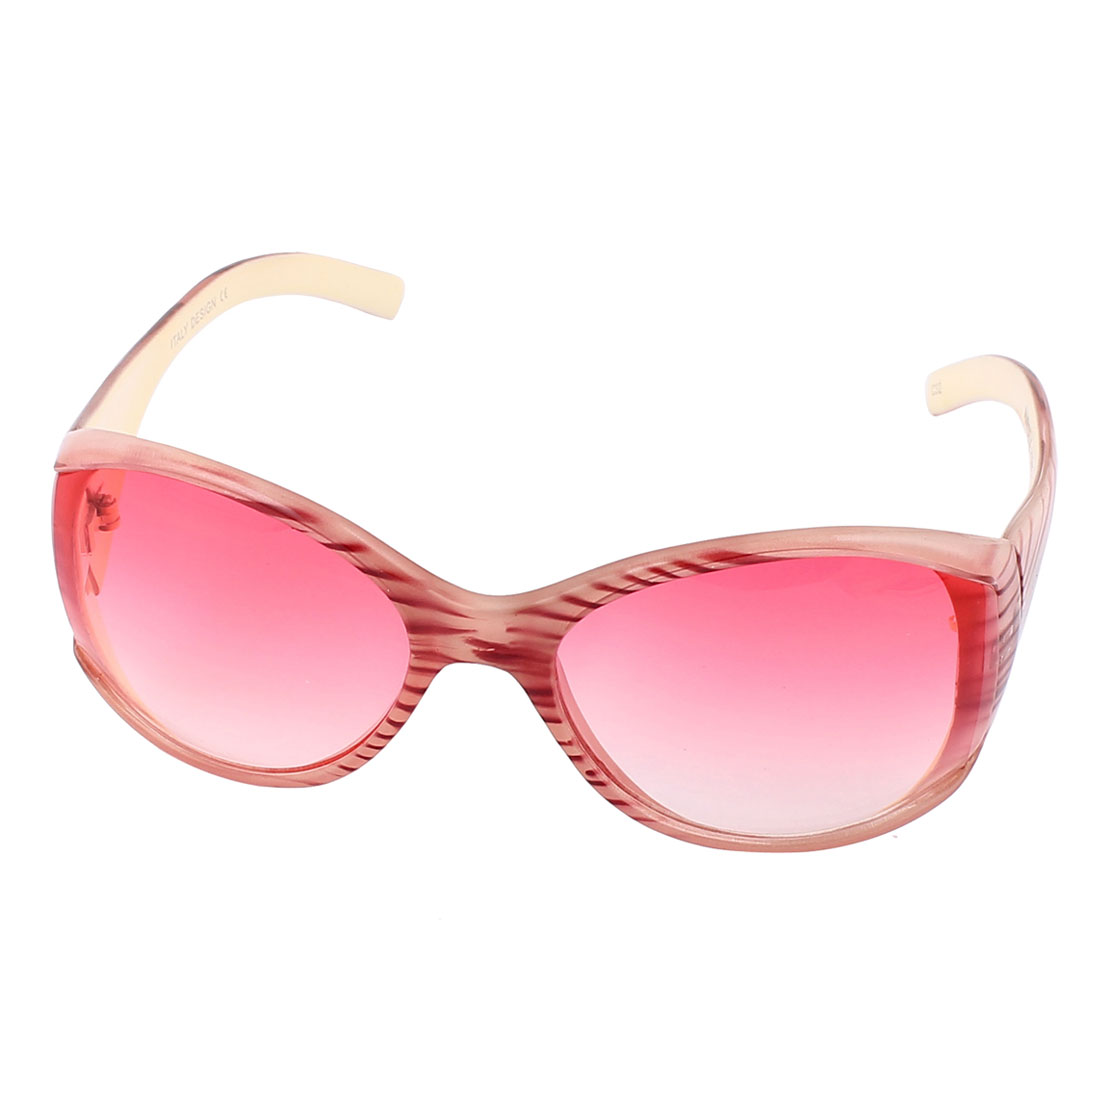 Full Frame Sun Protective Outdoor Eyewear Googles Sunglasses Pink